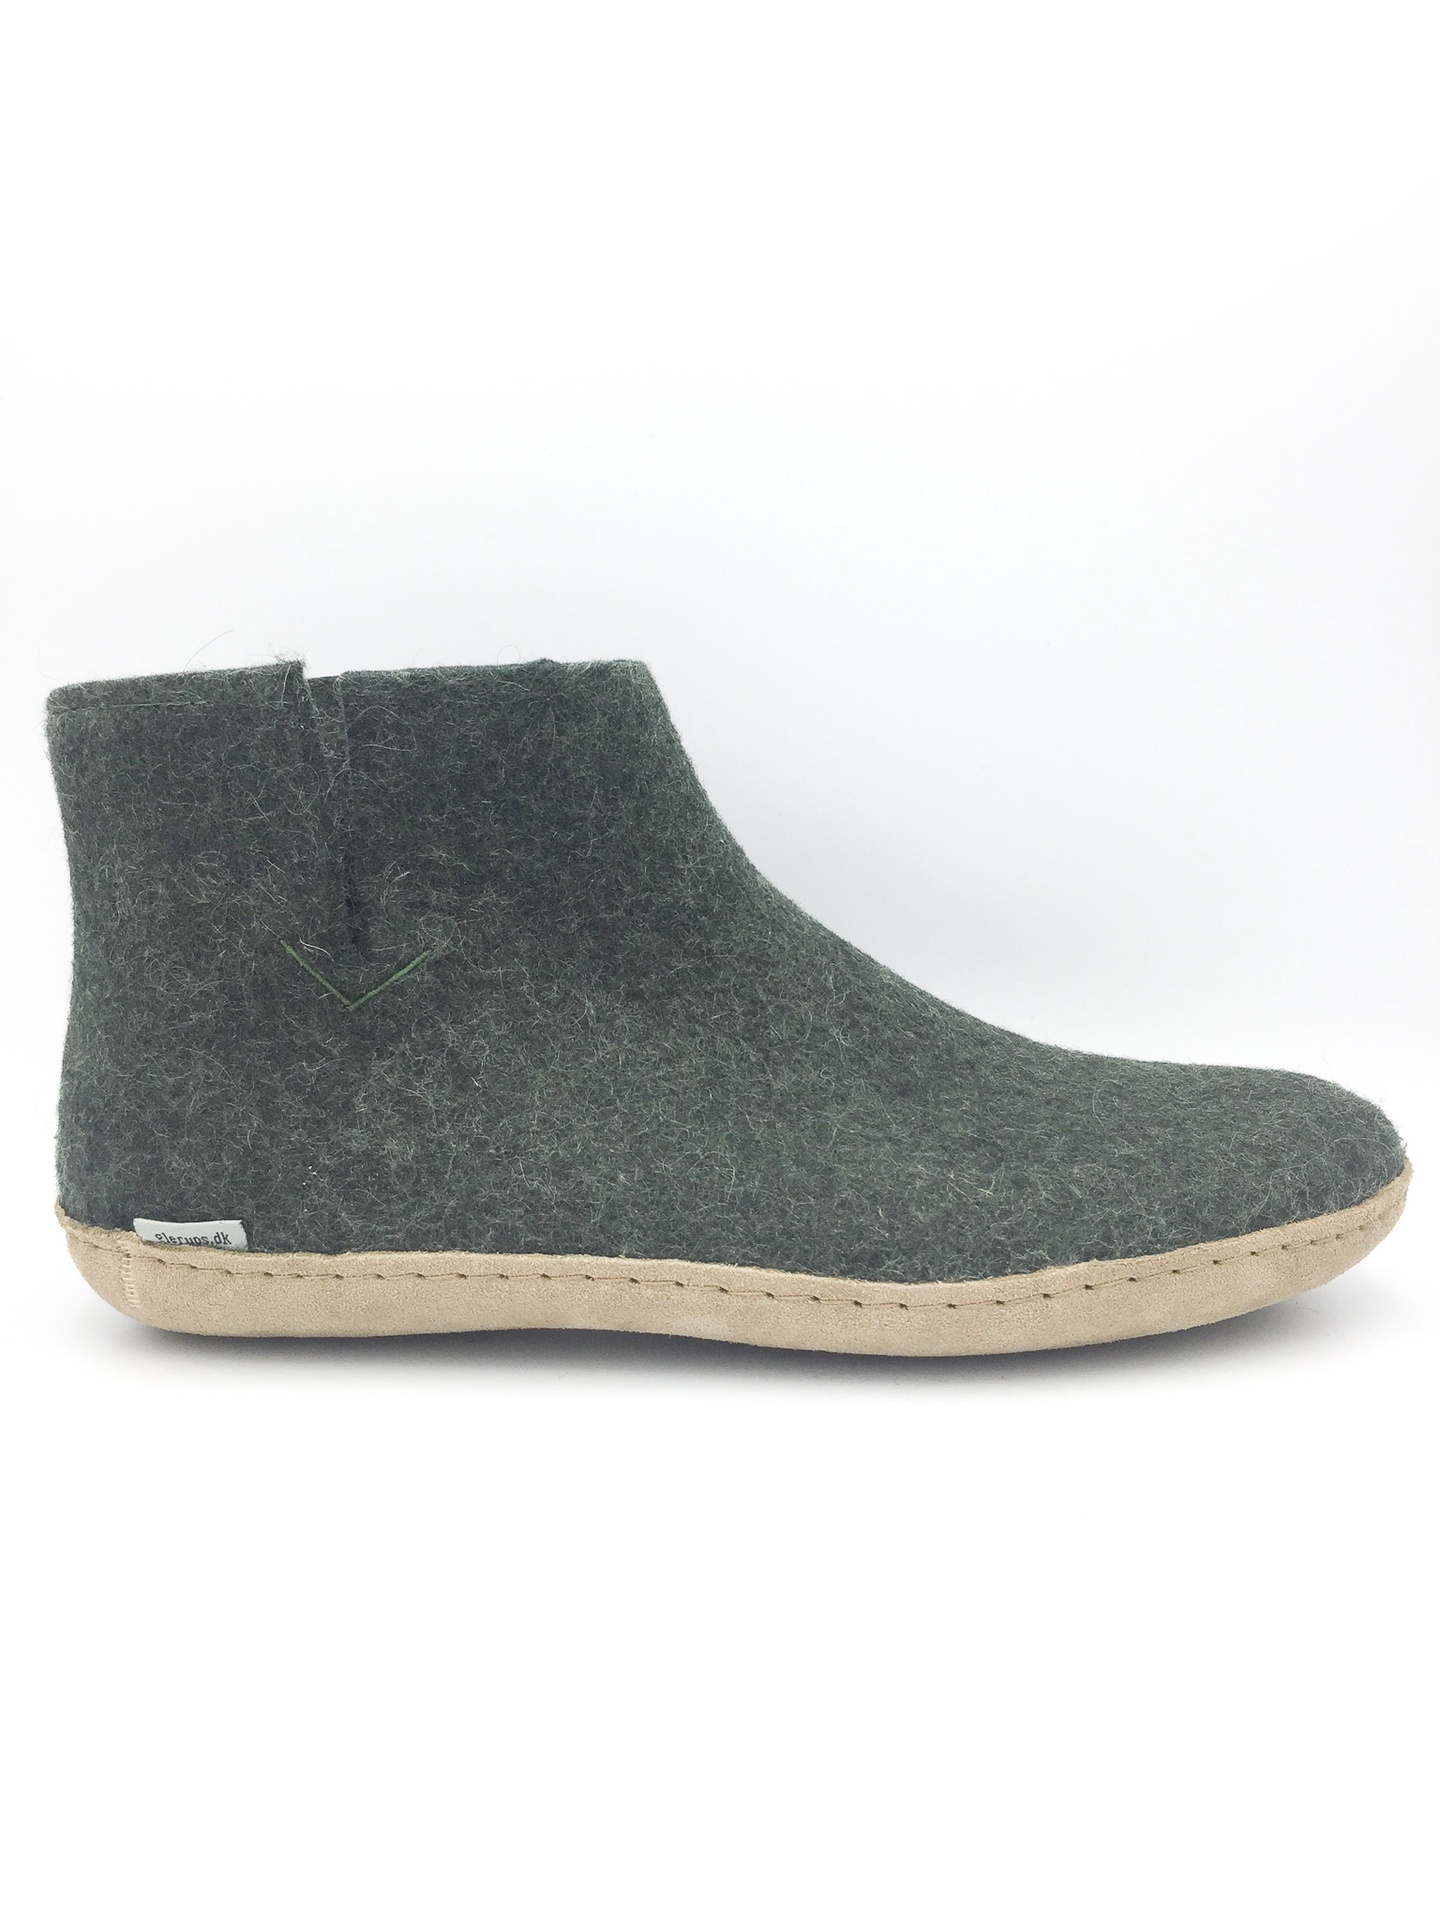 GLERUPS- FELT ANKLE BOOT IN FOREST